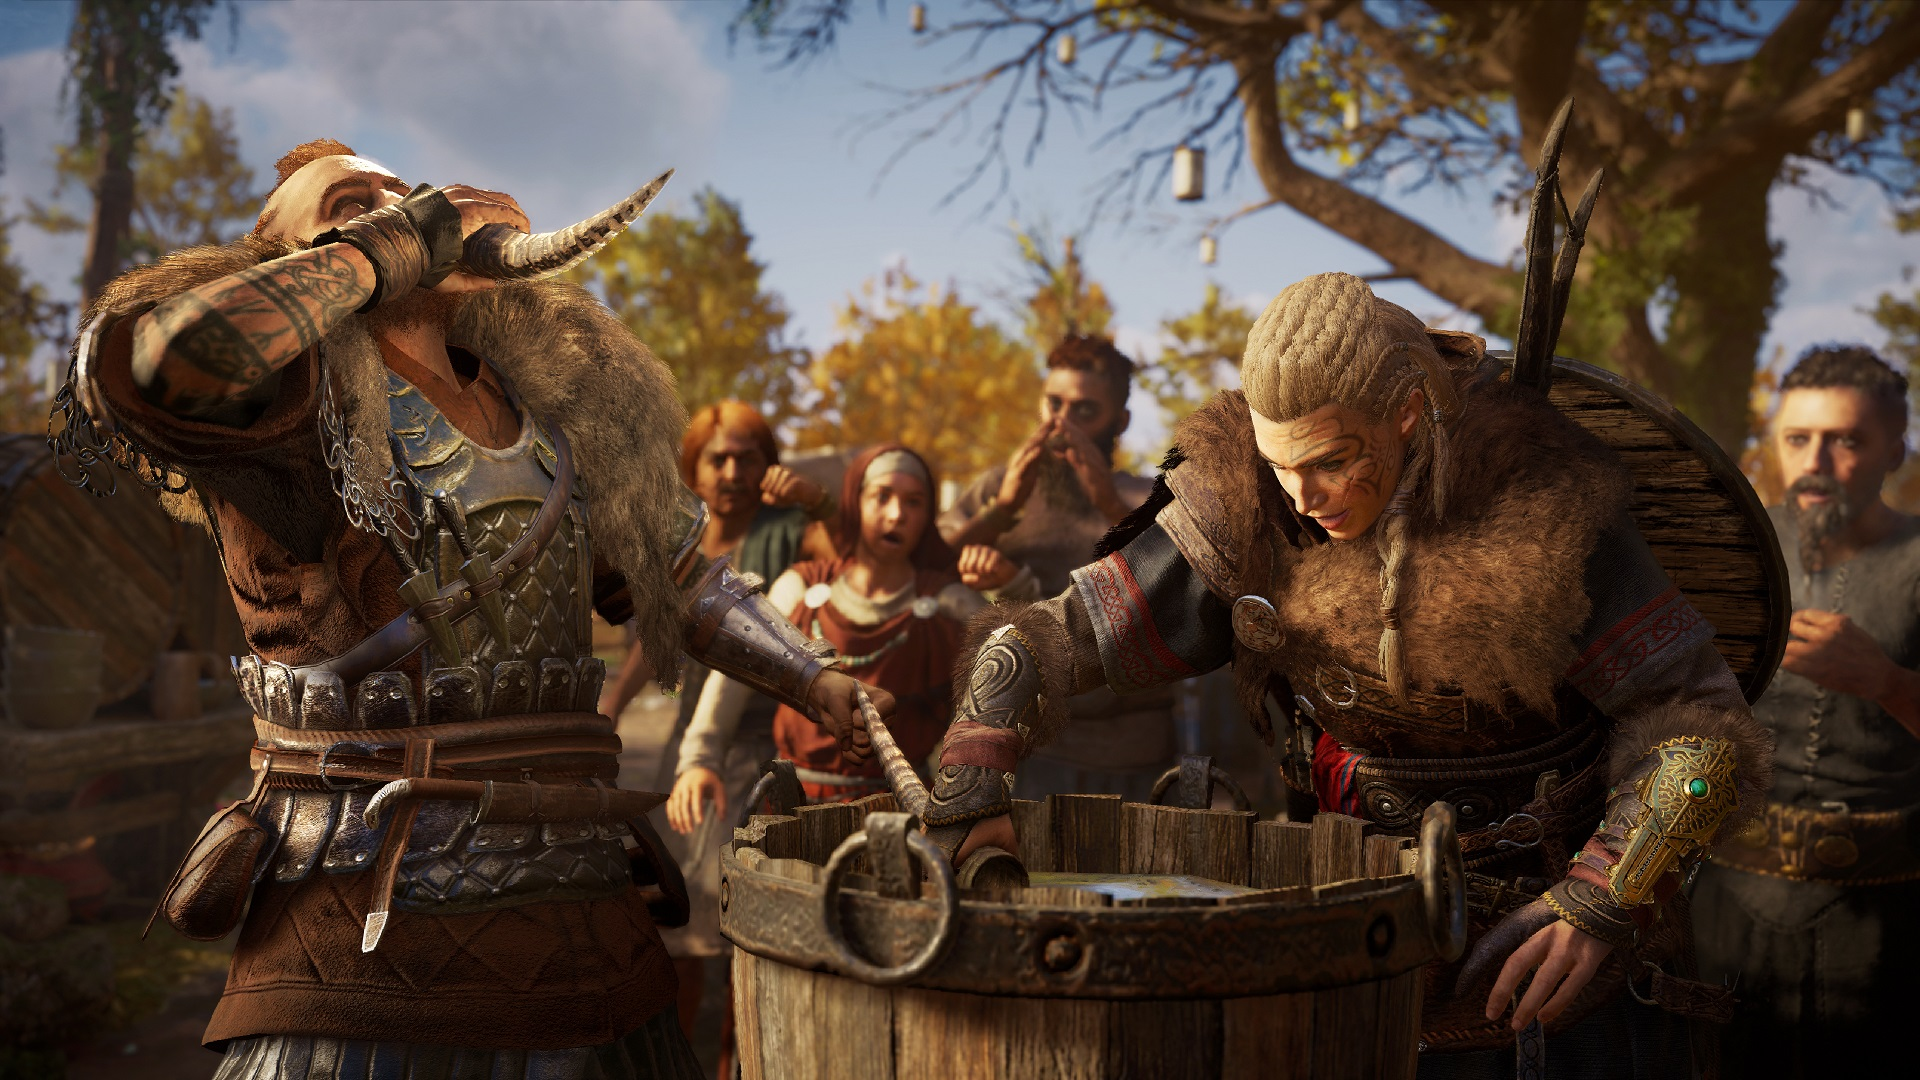 Assassin's Creed Valhalla takes the same approach to DLC as Odyssey, but scaled down a bit